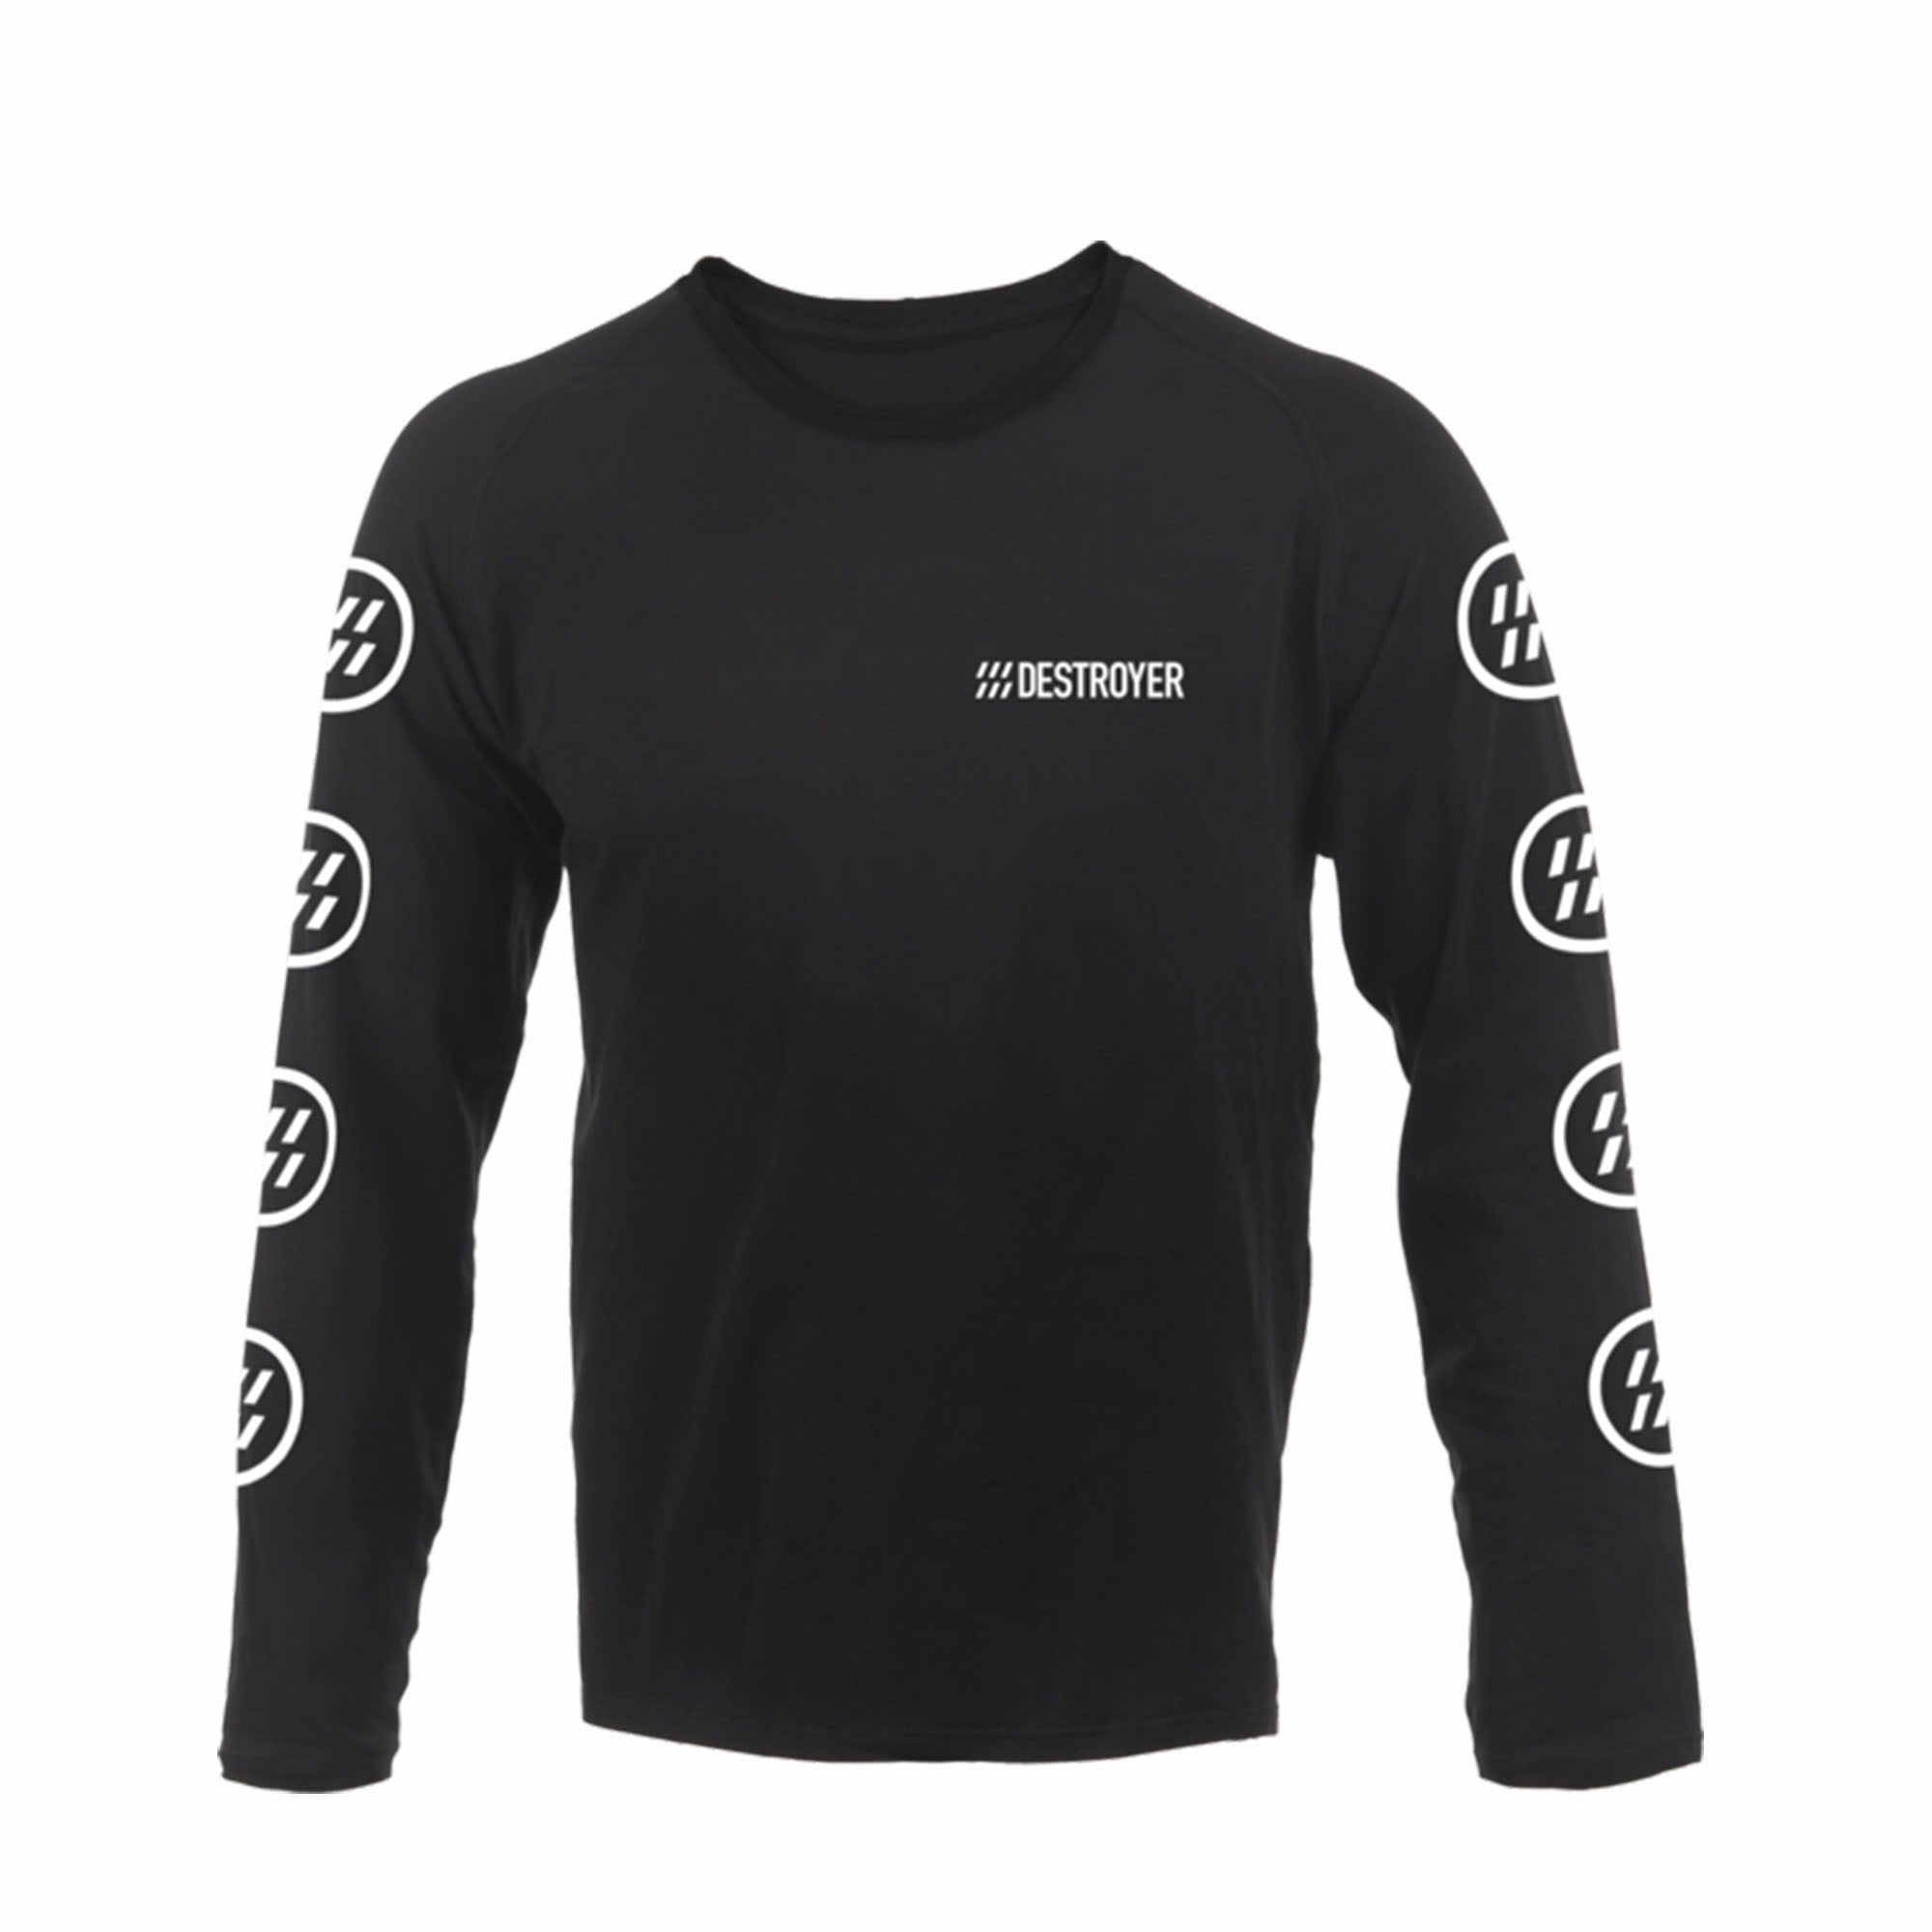 Mixed Up Long Sleeve T-Shirt